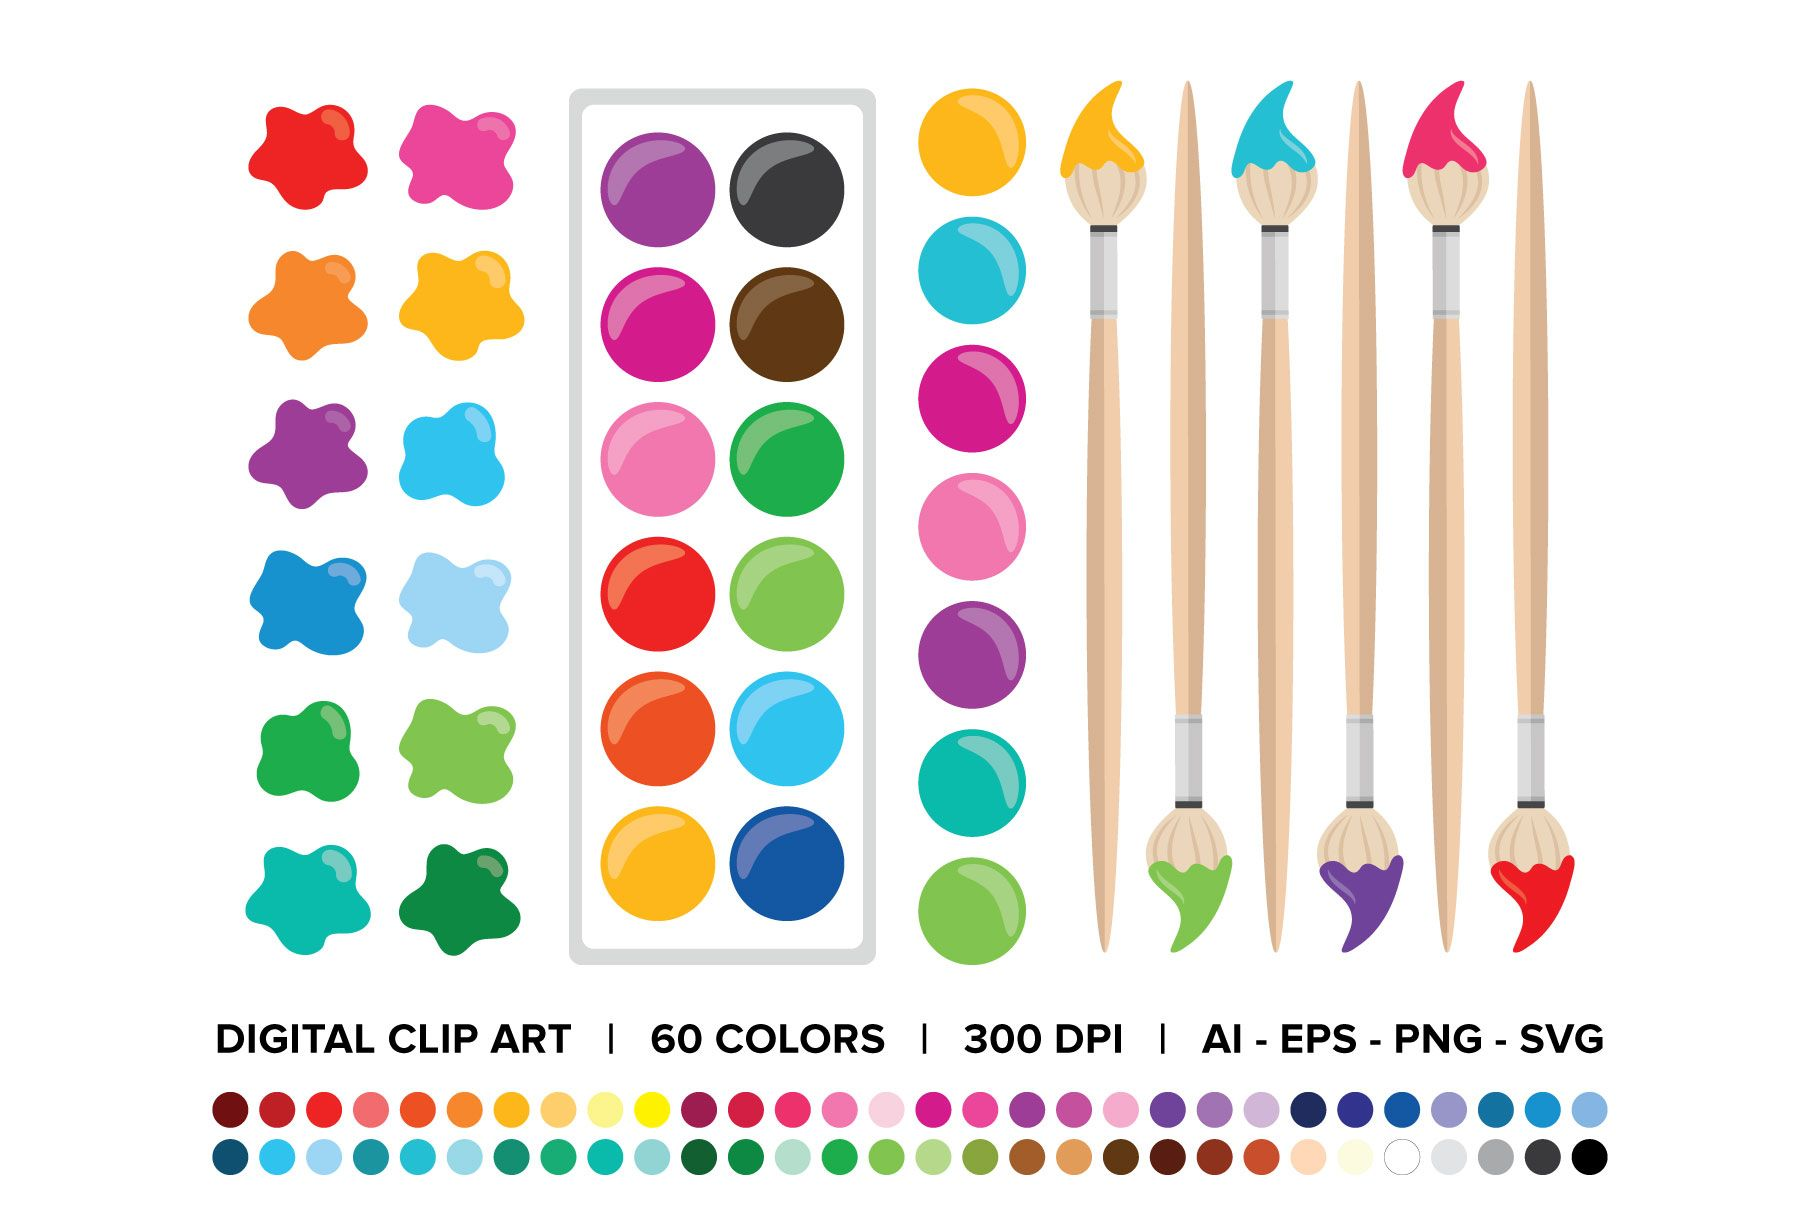 Paint Brush & Palette Clip Art Set (Graphic) by Running